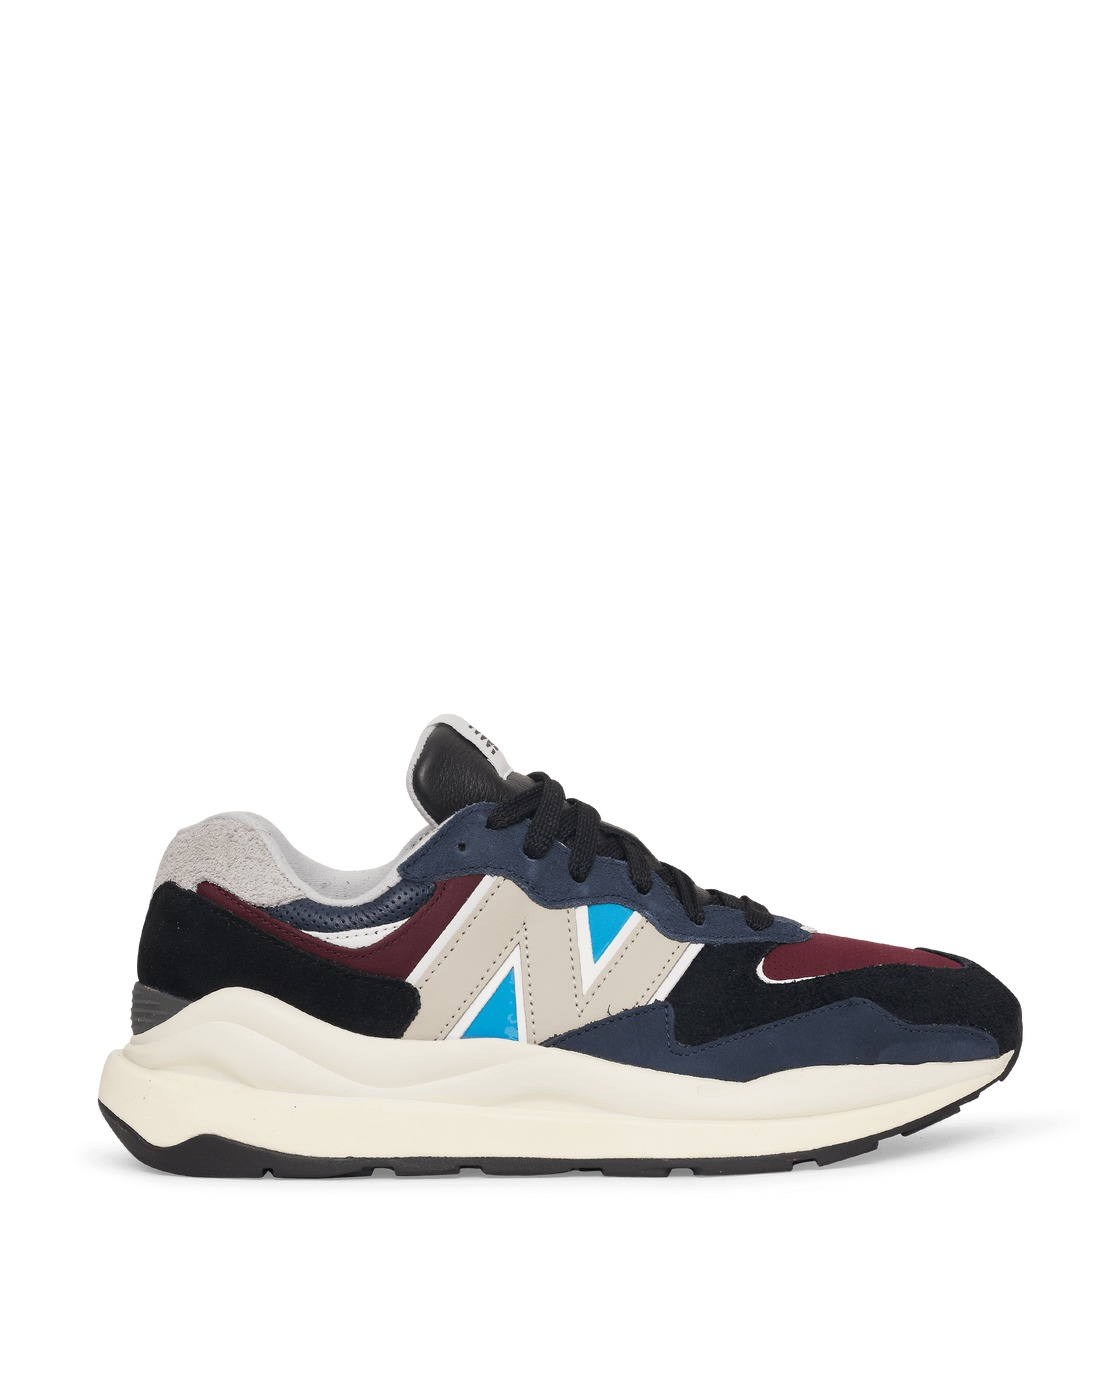 Photo: New Balance 57/40 Sneakers Navy/Burgundy